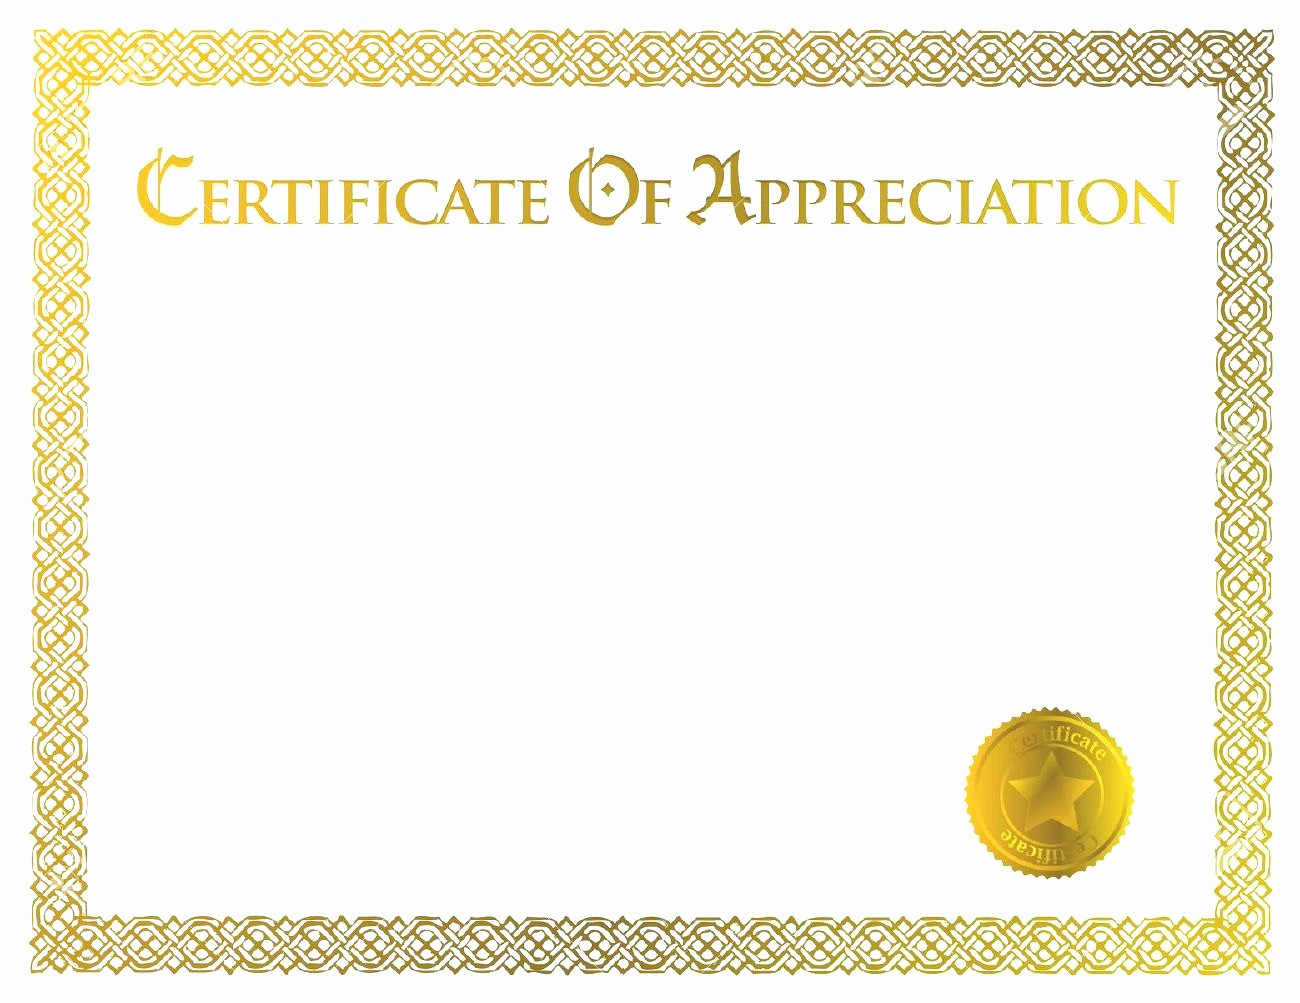 Border for Certificate Of Appreciation Best Of Certificate Appreciation Border Filename